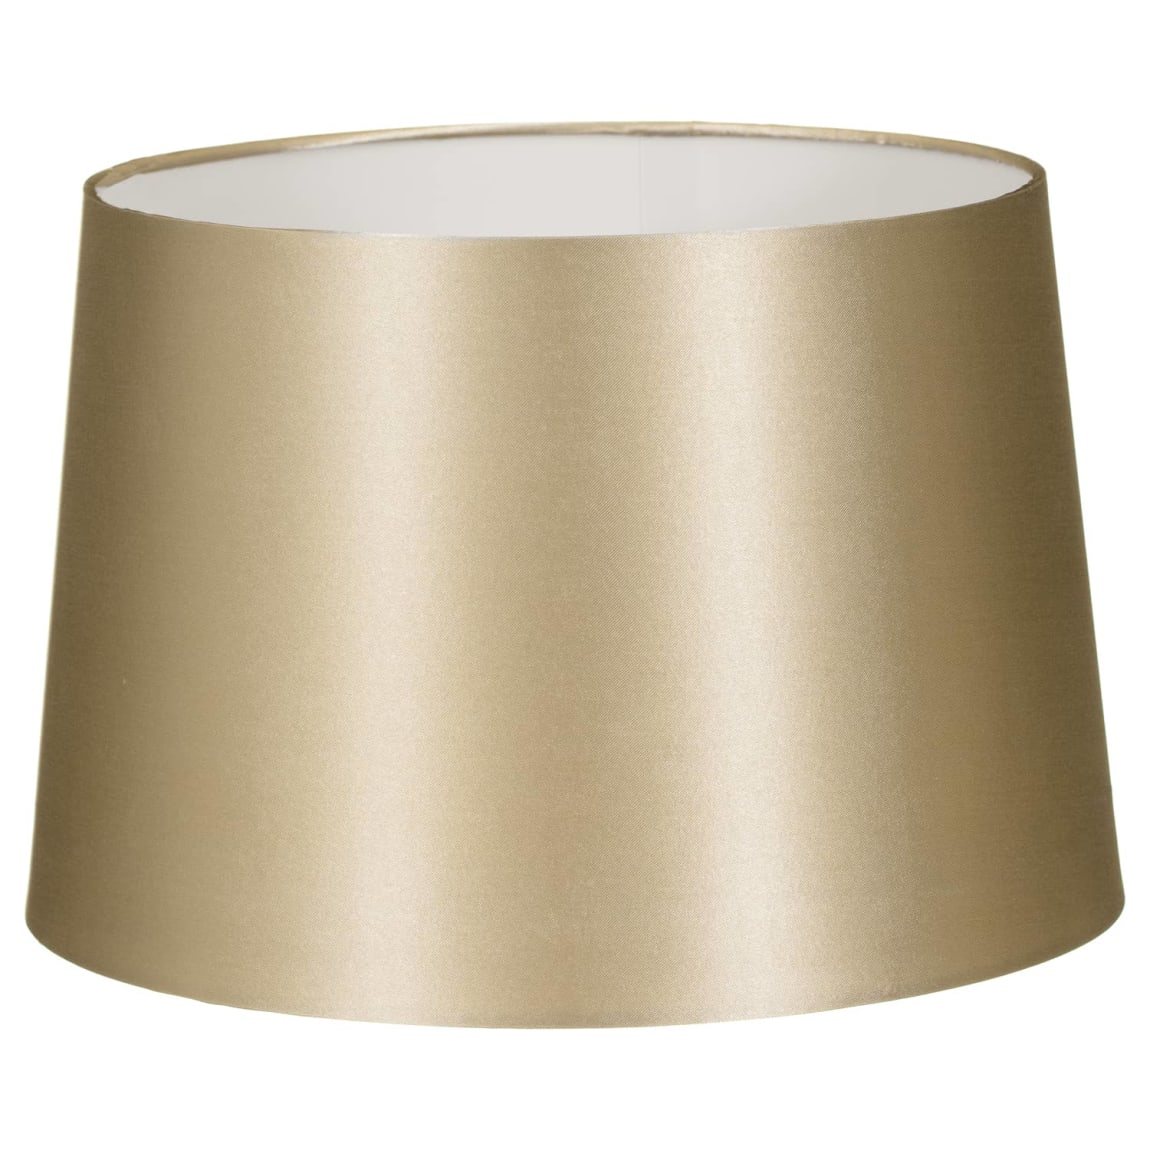 Satin Light Shade 11